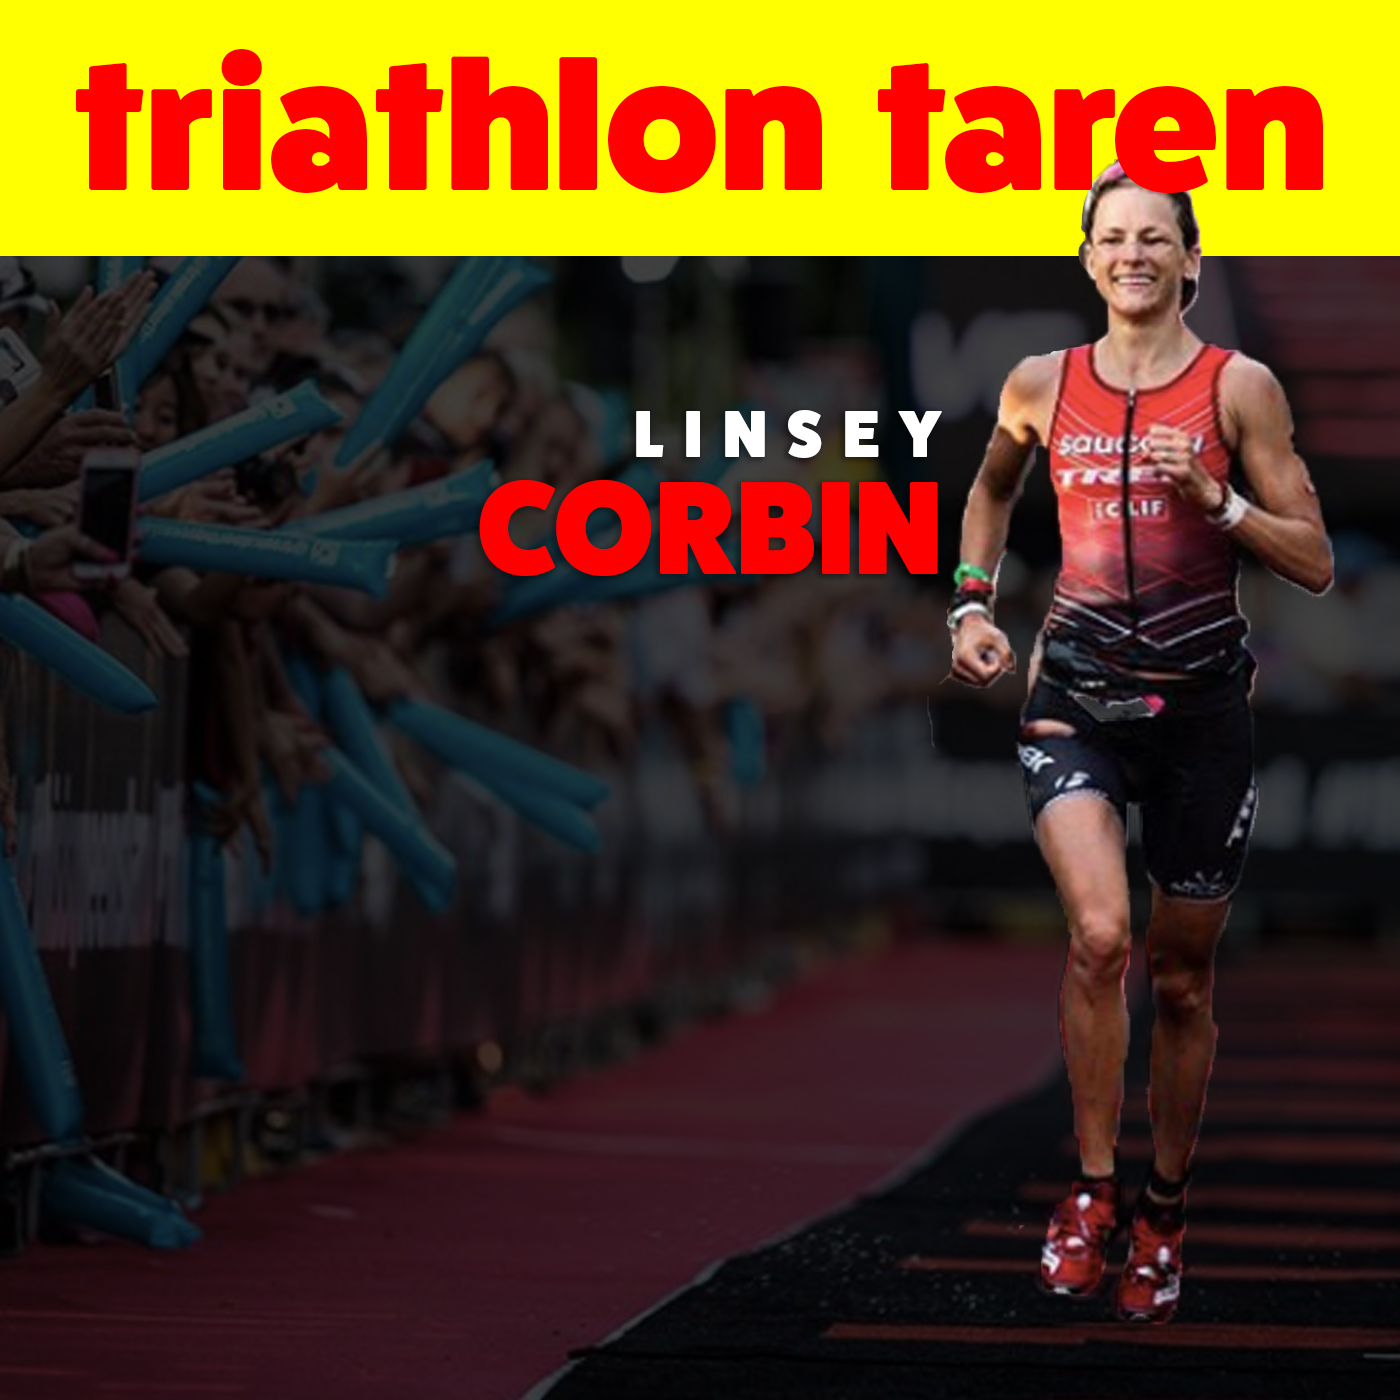 Linsey Corbin: 10+ Years of Kona Pro Racing, Record Setting Ironmans, and Coming Back From Injury